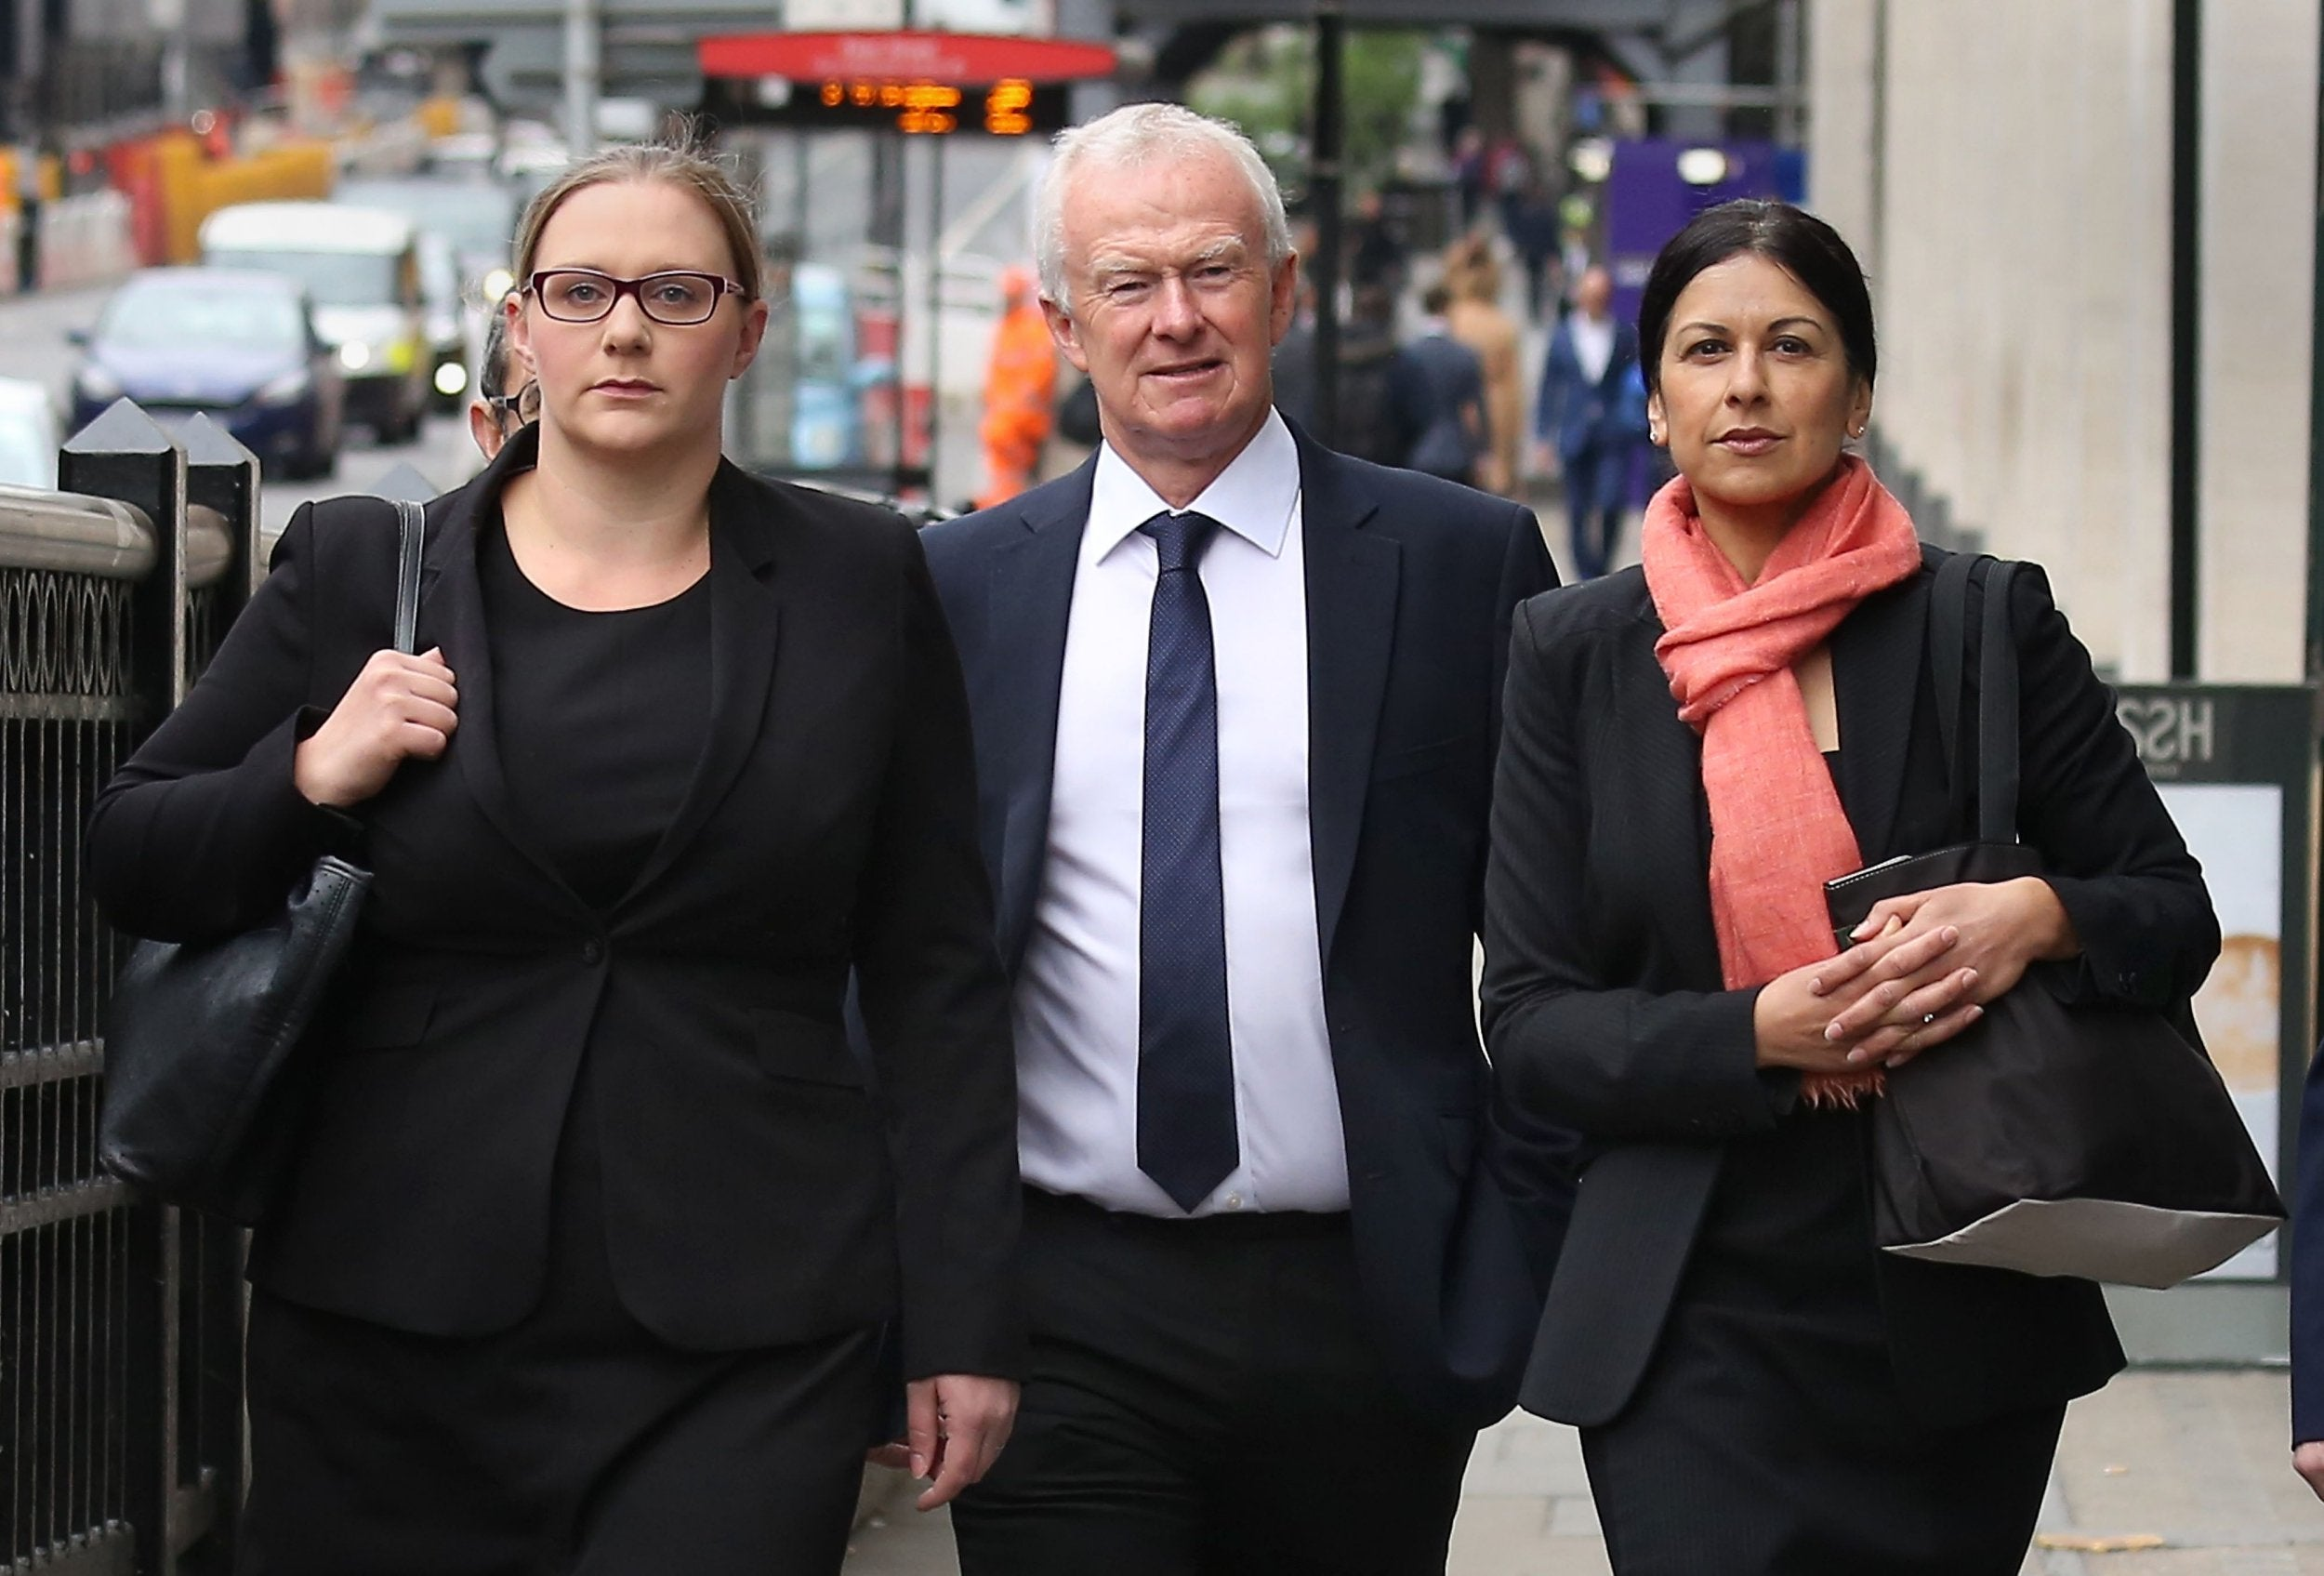 Lawyers who pursued false claims against British troops in Iraq will not face new misconduct charges